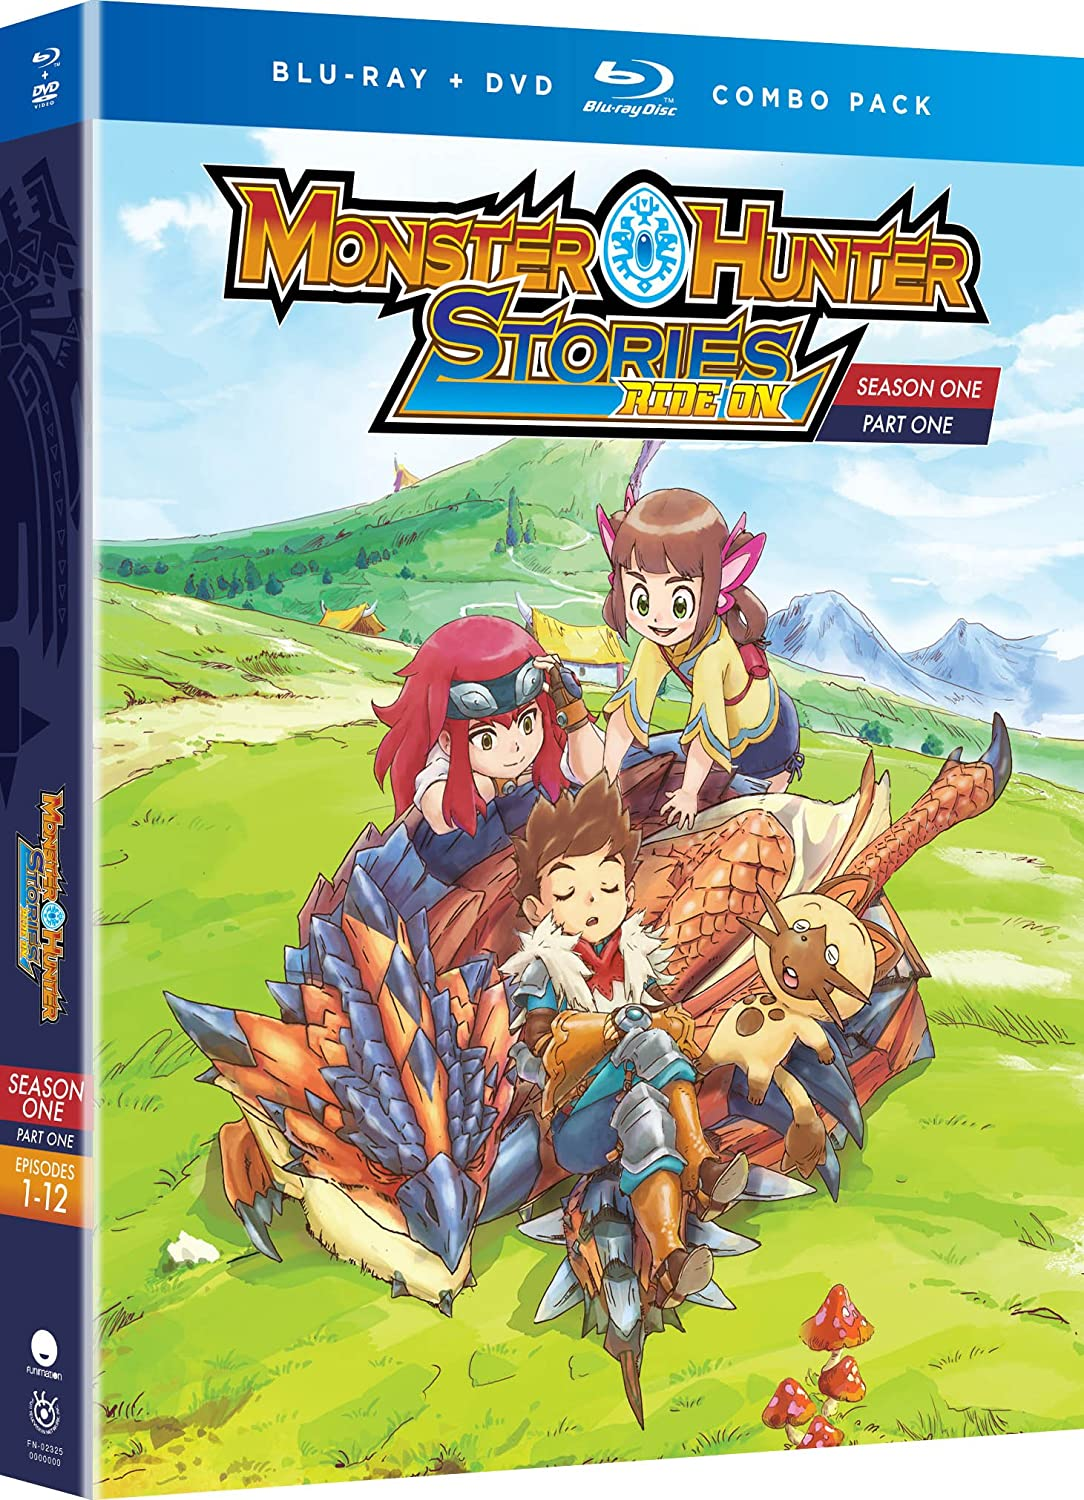 Amazon Com Monster Hunter Stories Ride On Season One Part One